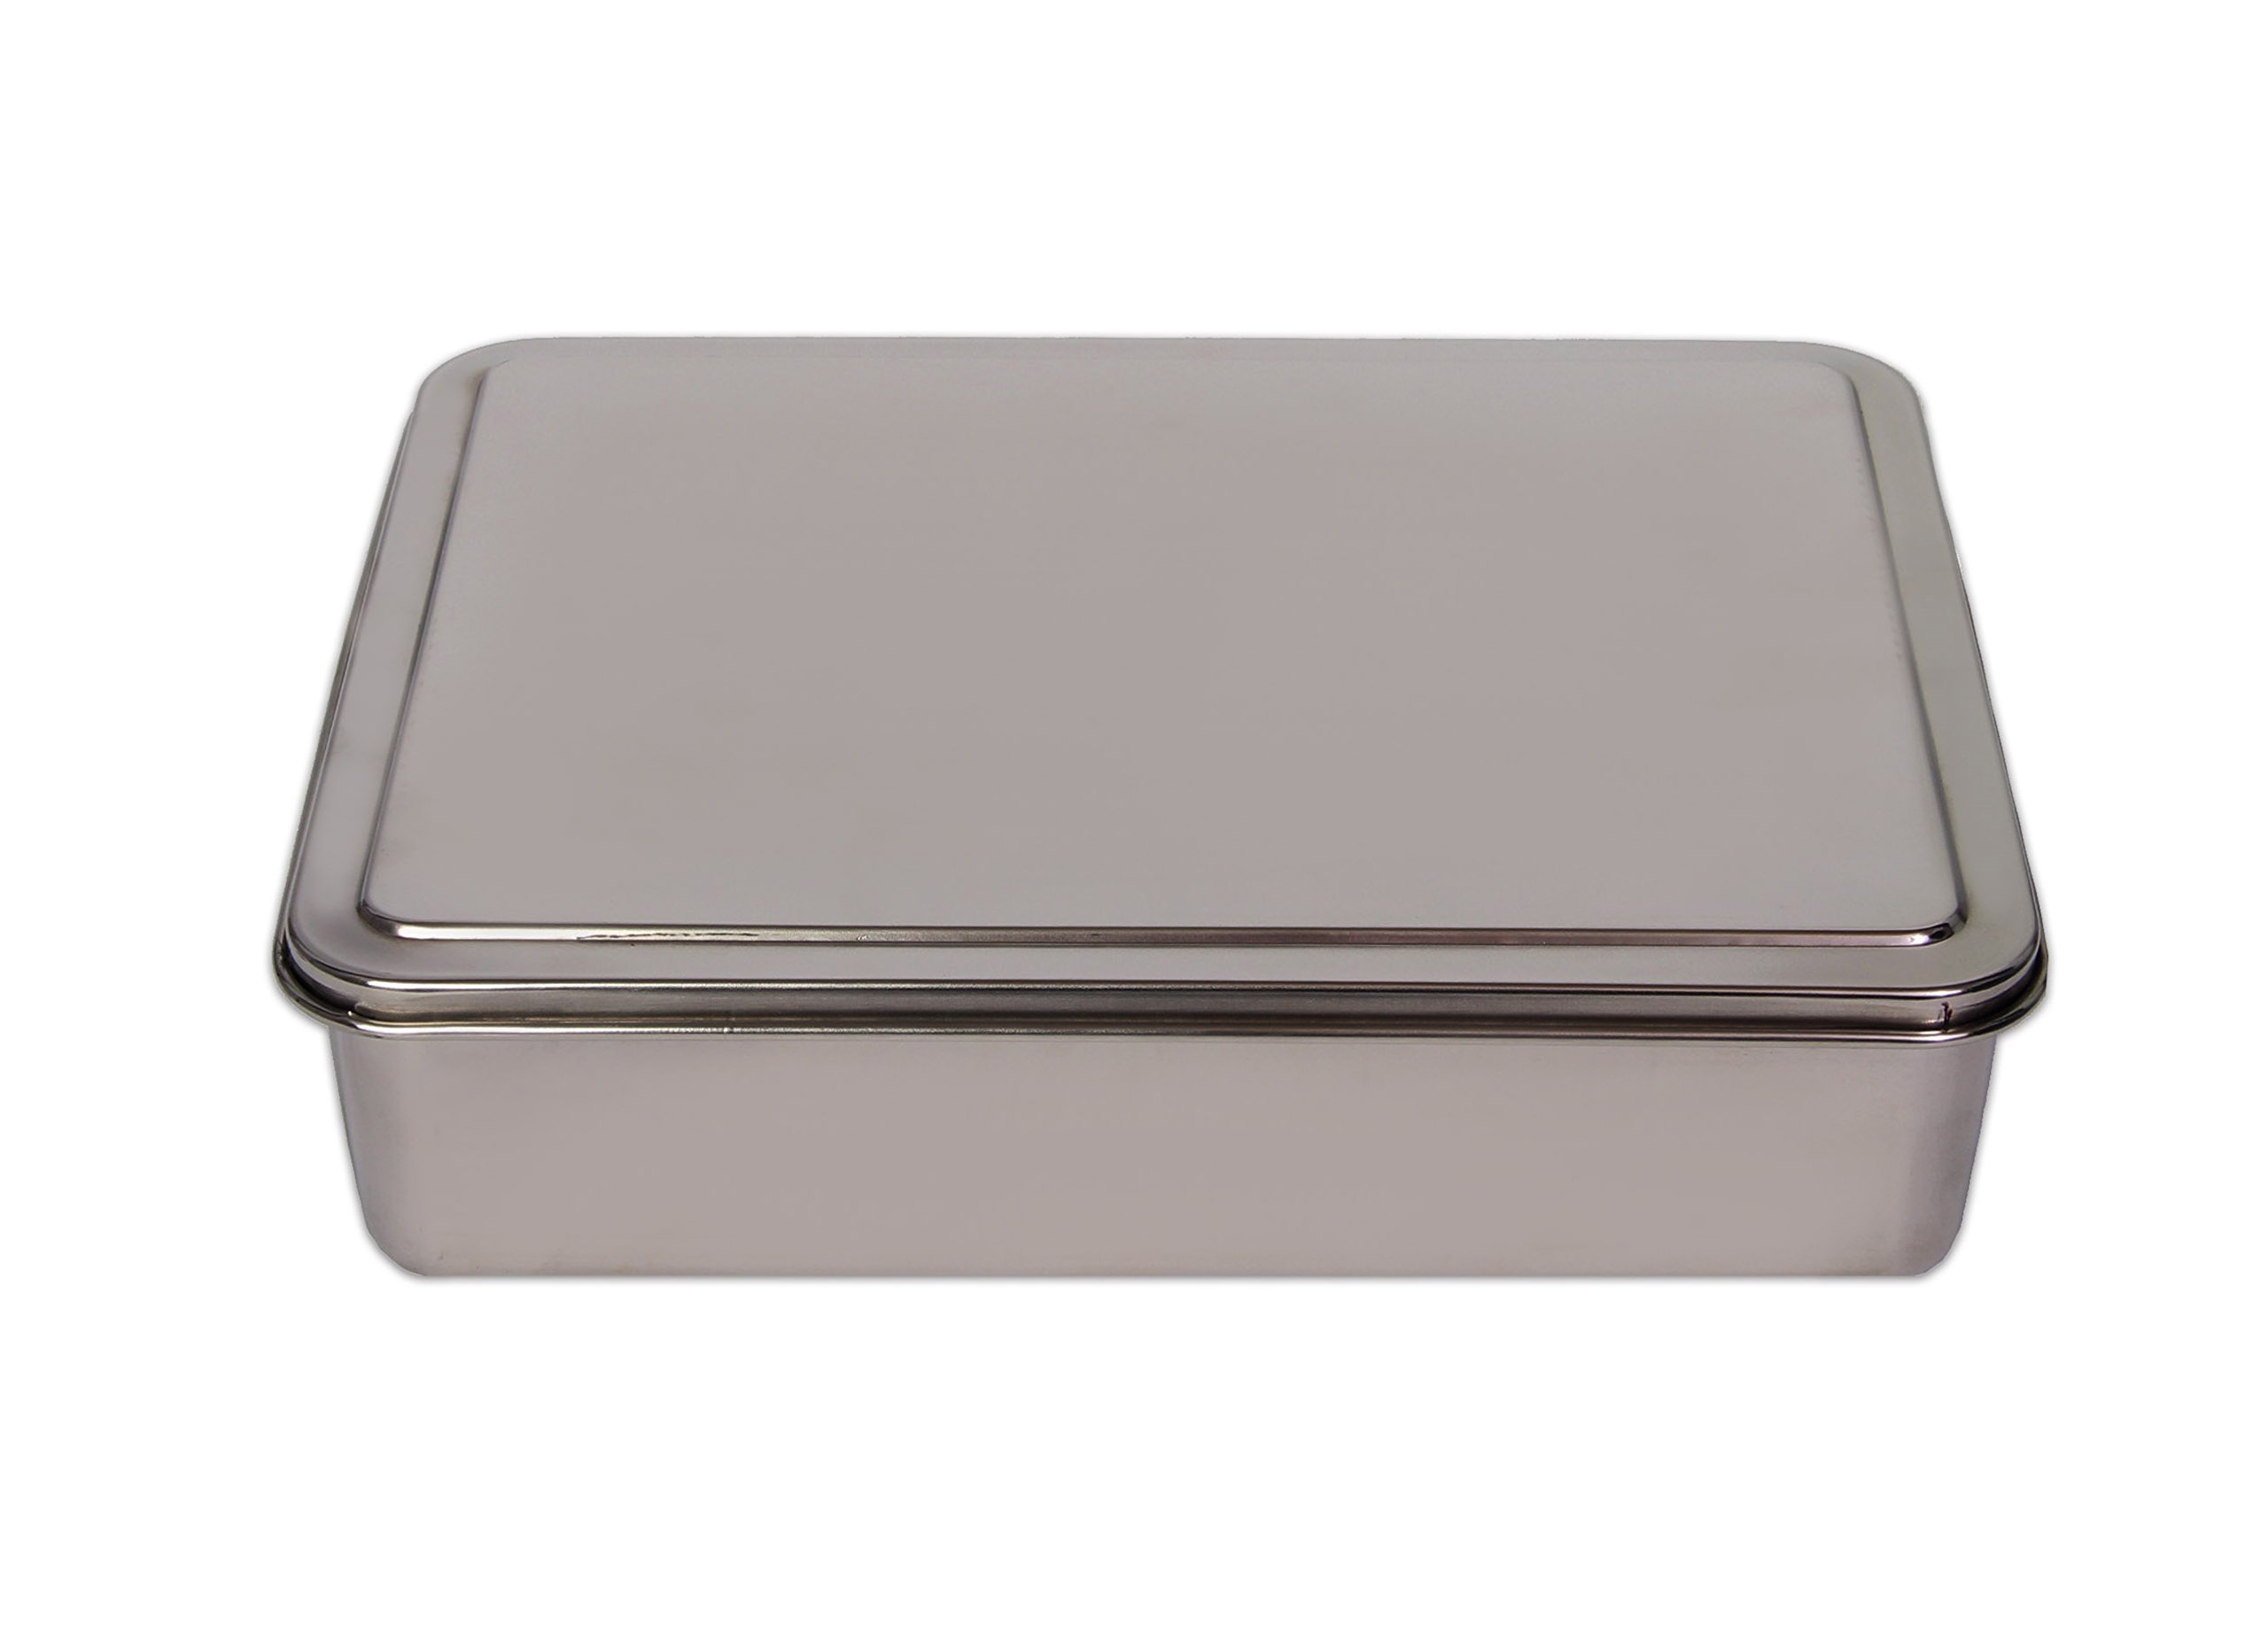 YBM HOME Stainless Steel Covered Cake Pan, Silver (Small-2401) by Ybmhome